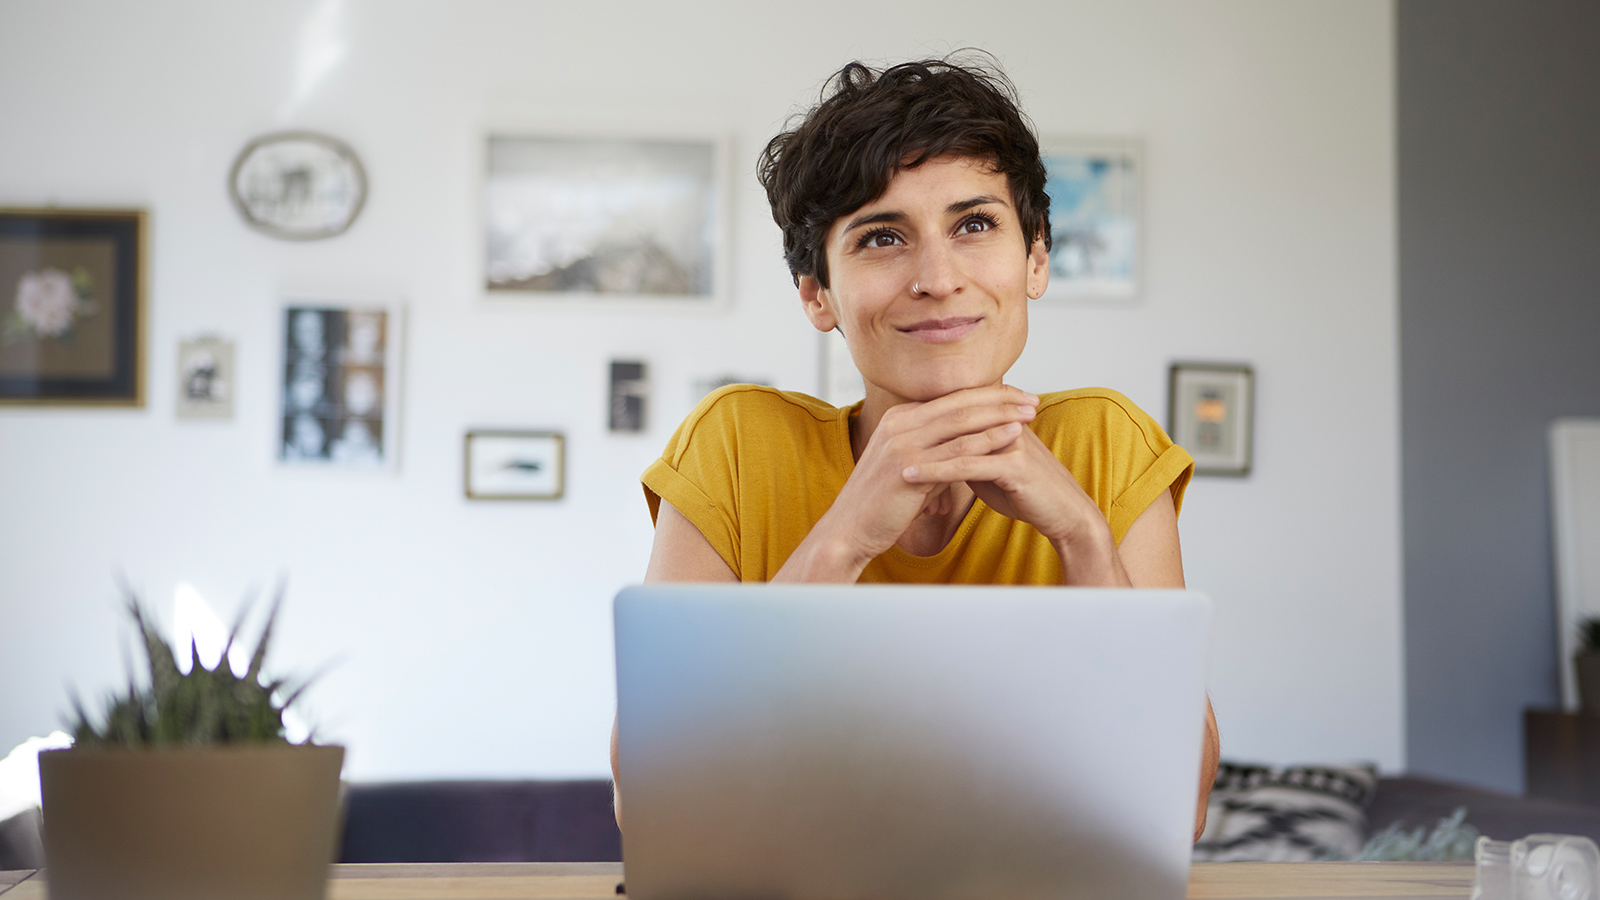 A consultant looks up from her laptop.